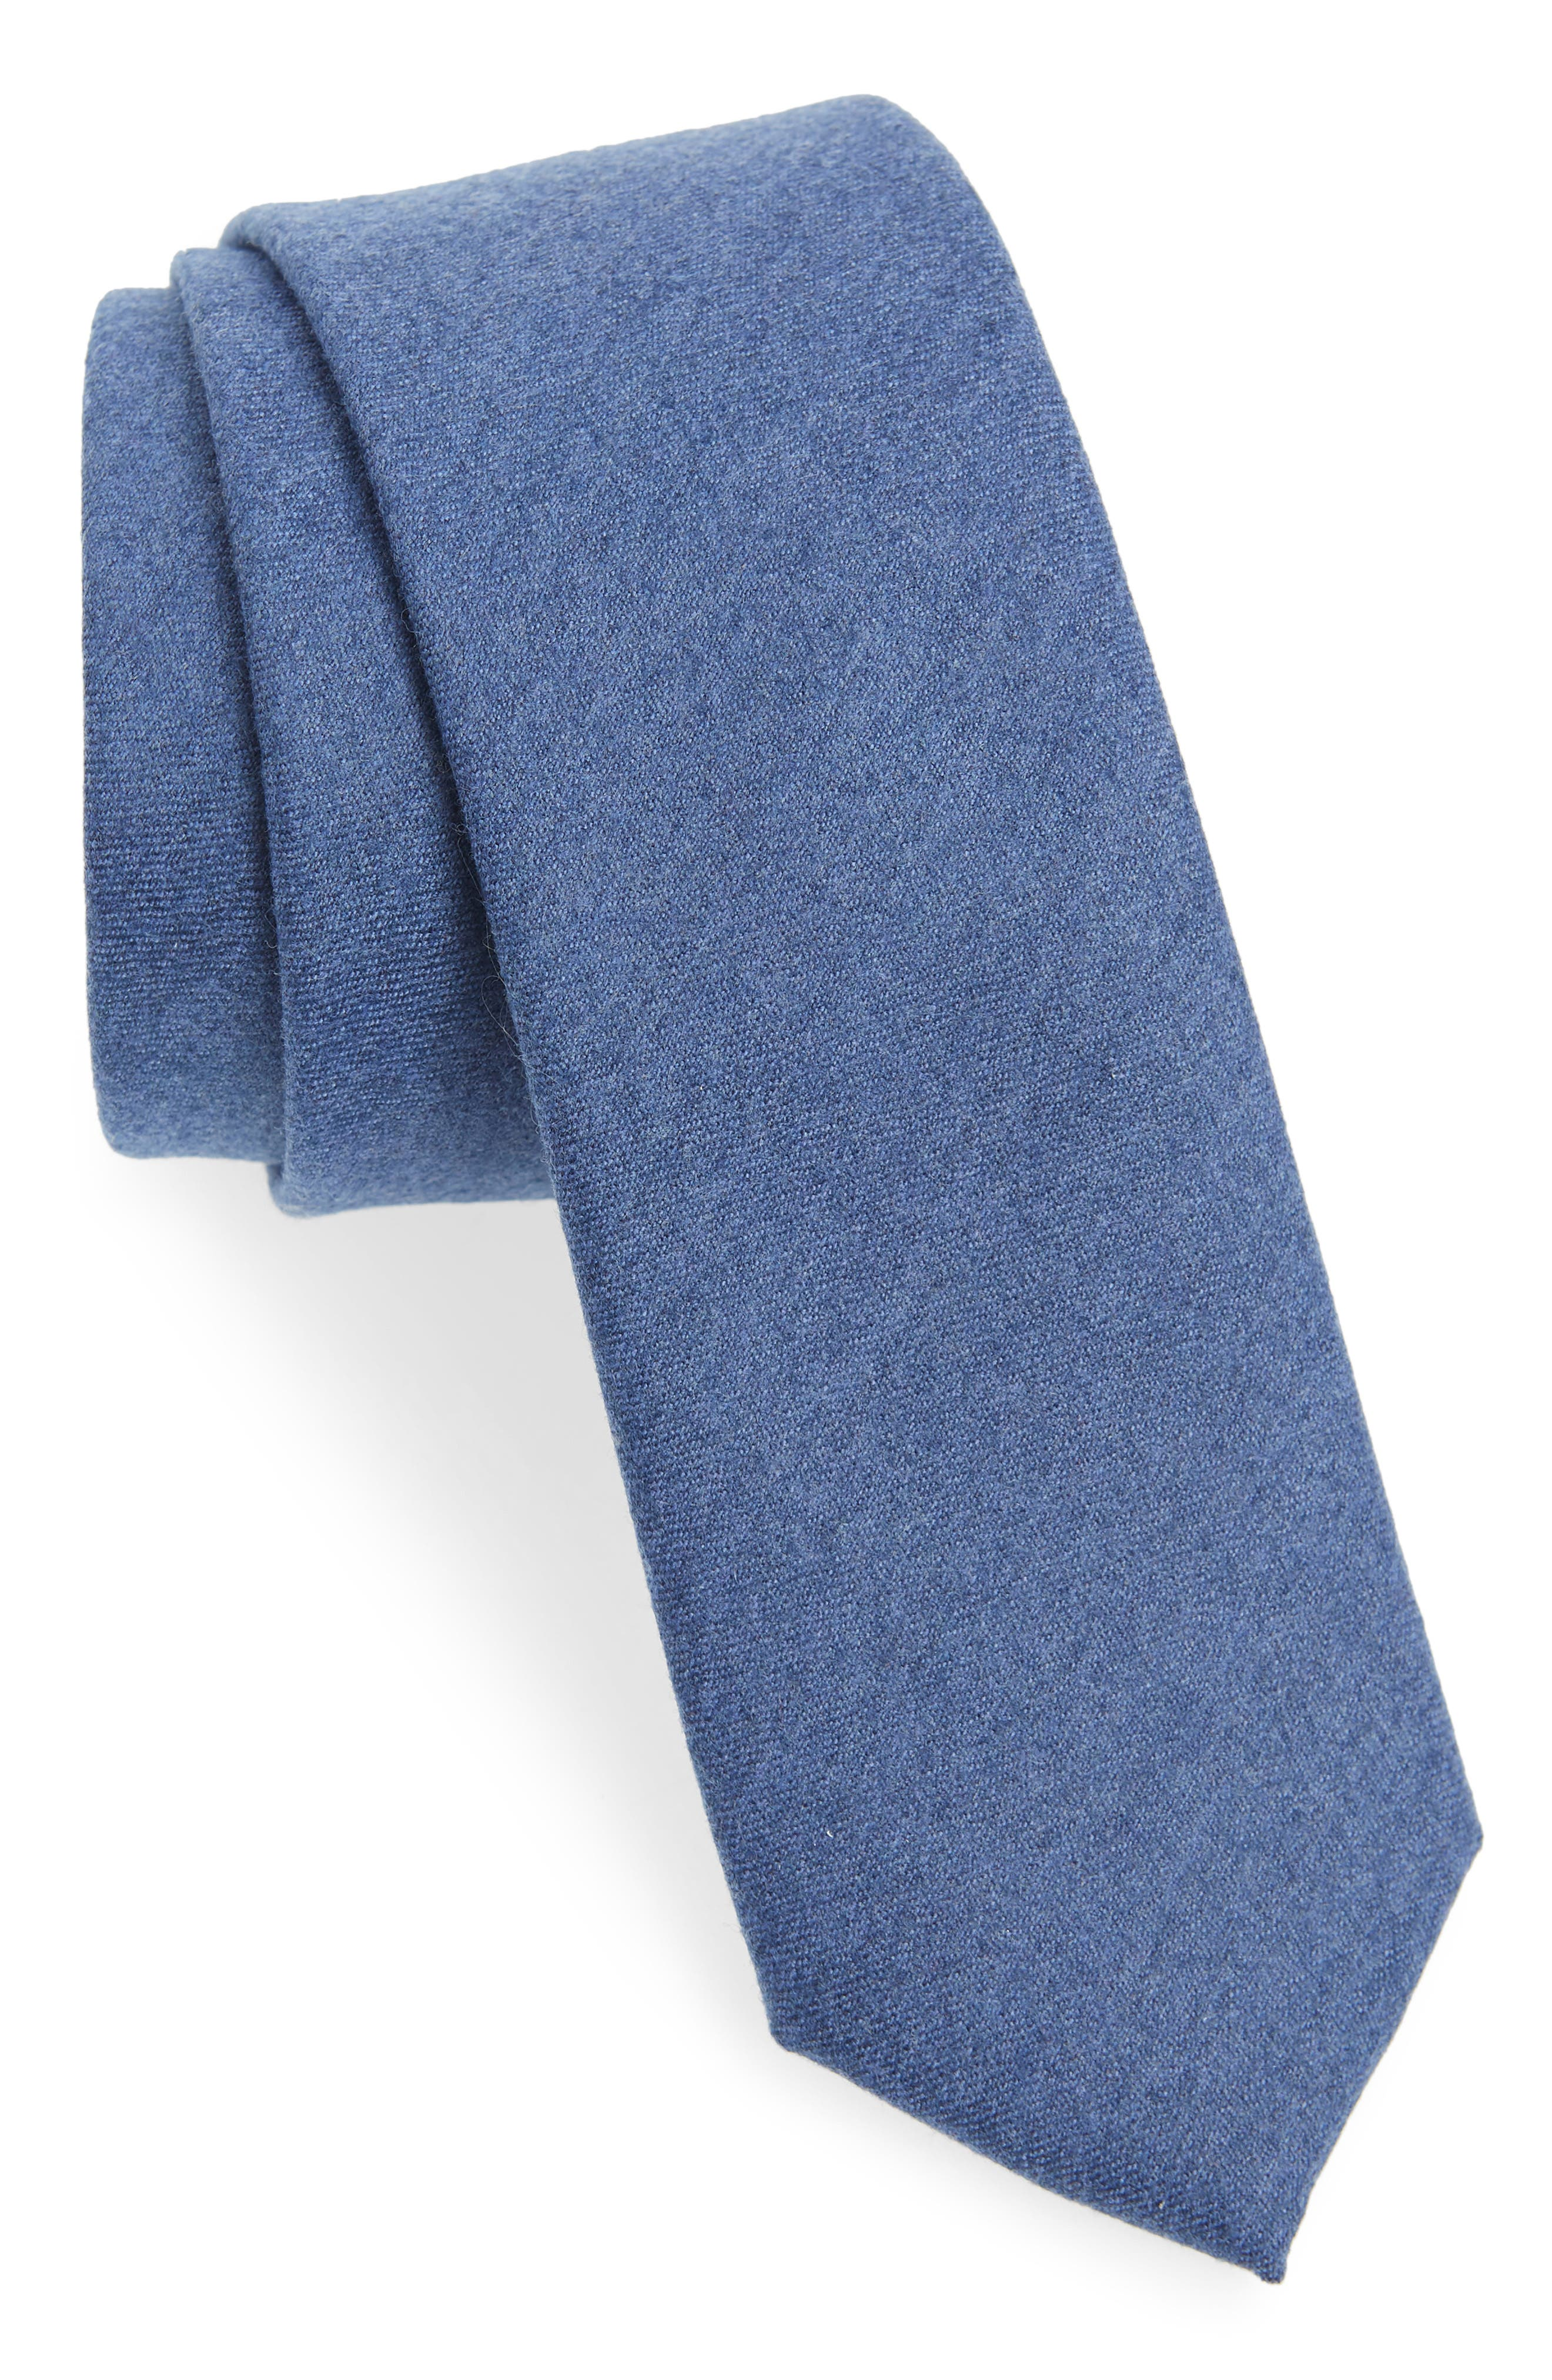 THE TIE BAR, Togna Solid Wool Tie, Main thumbnail 1, color, BLUE